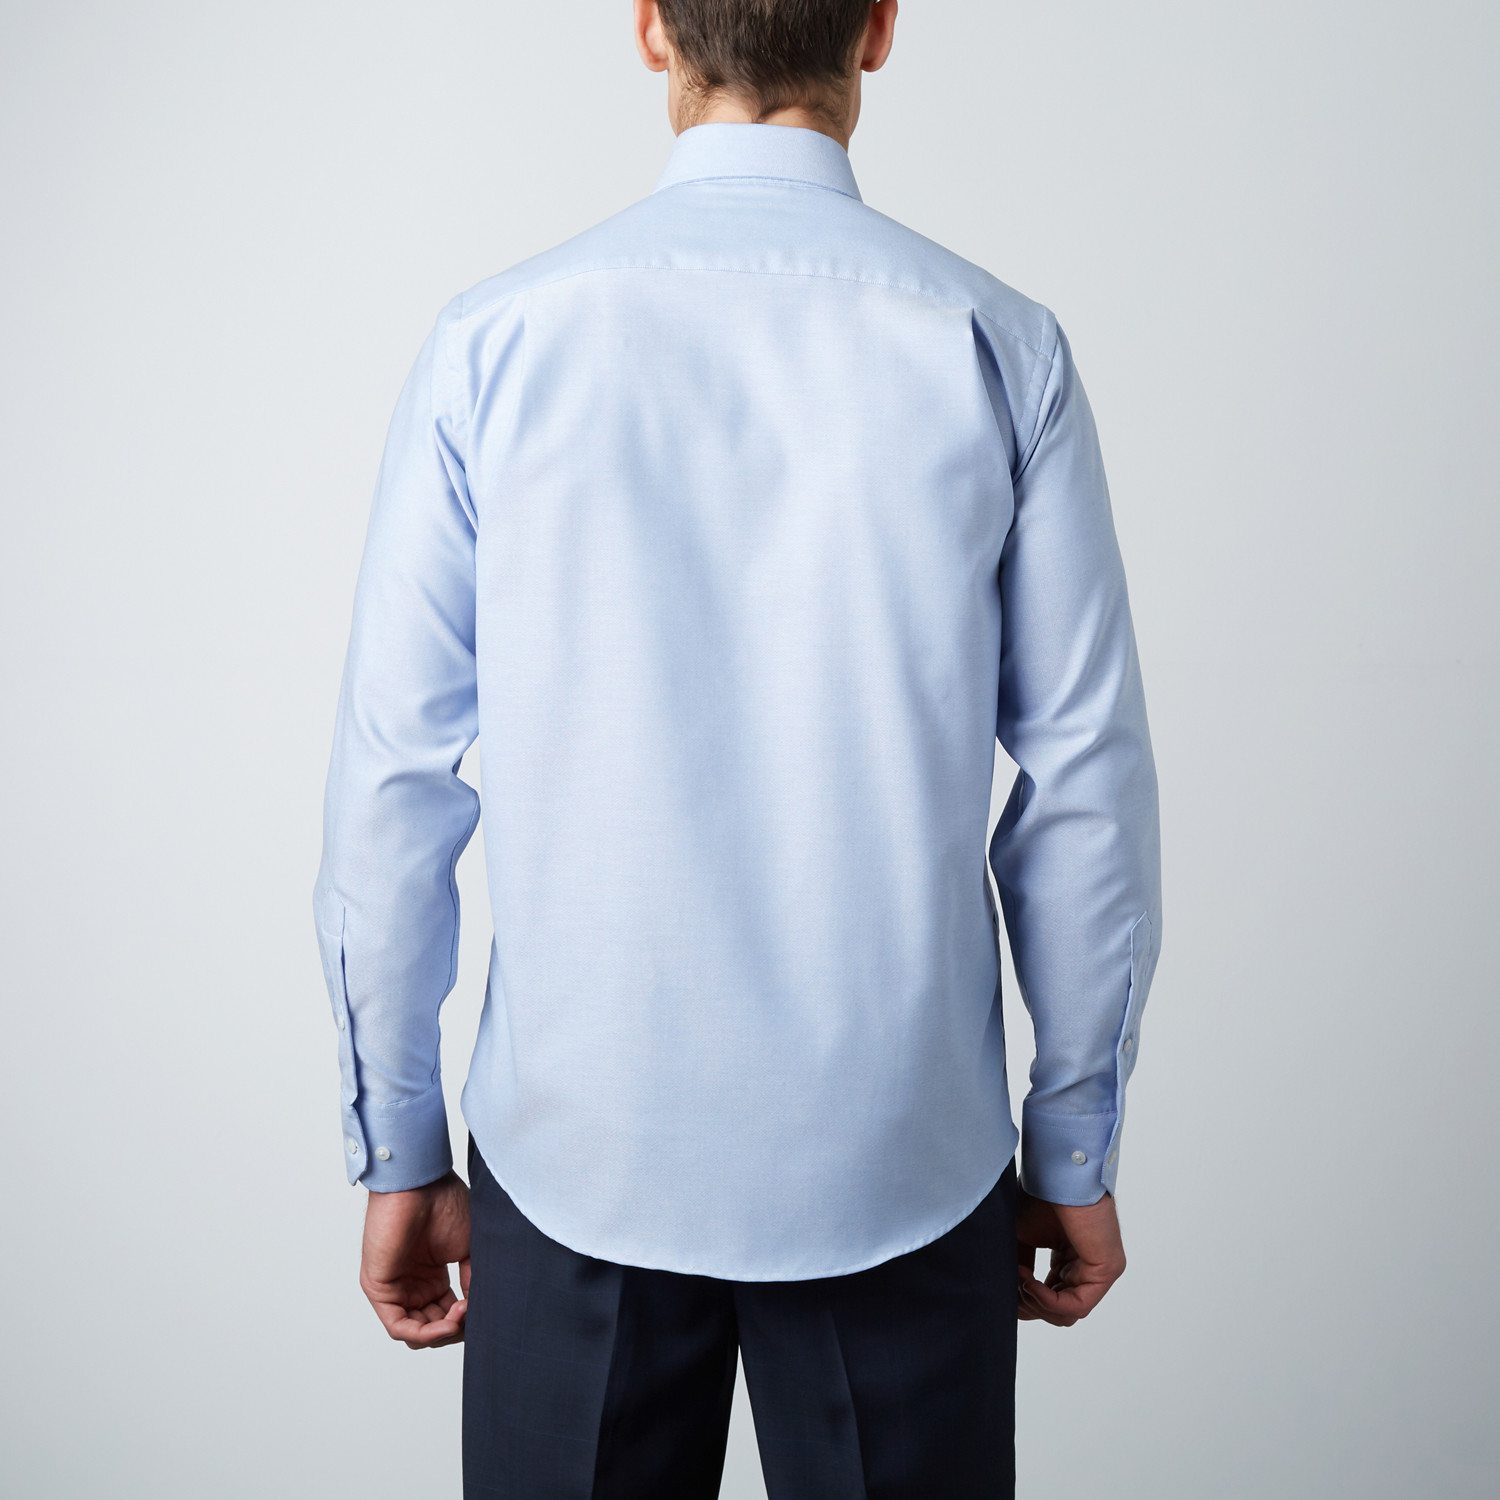 Classic dress shirt white blue 39 clearance for Classic white dress shirt